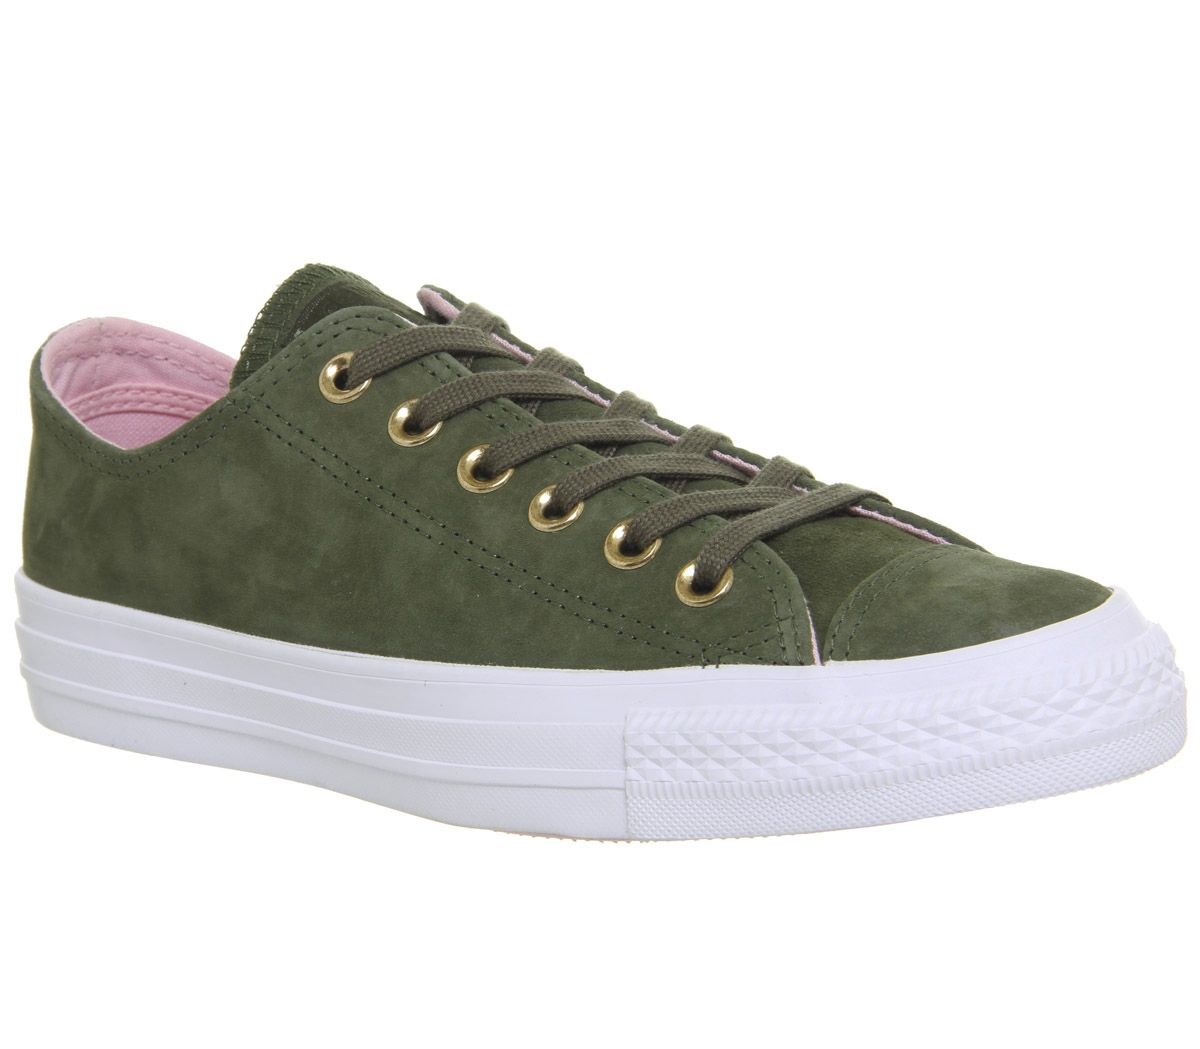 aa74eaafb6aa Converse Allstar Low Leather Herbal Cherry Blossom White - Hers trainers